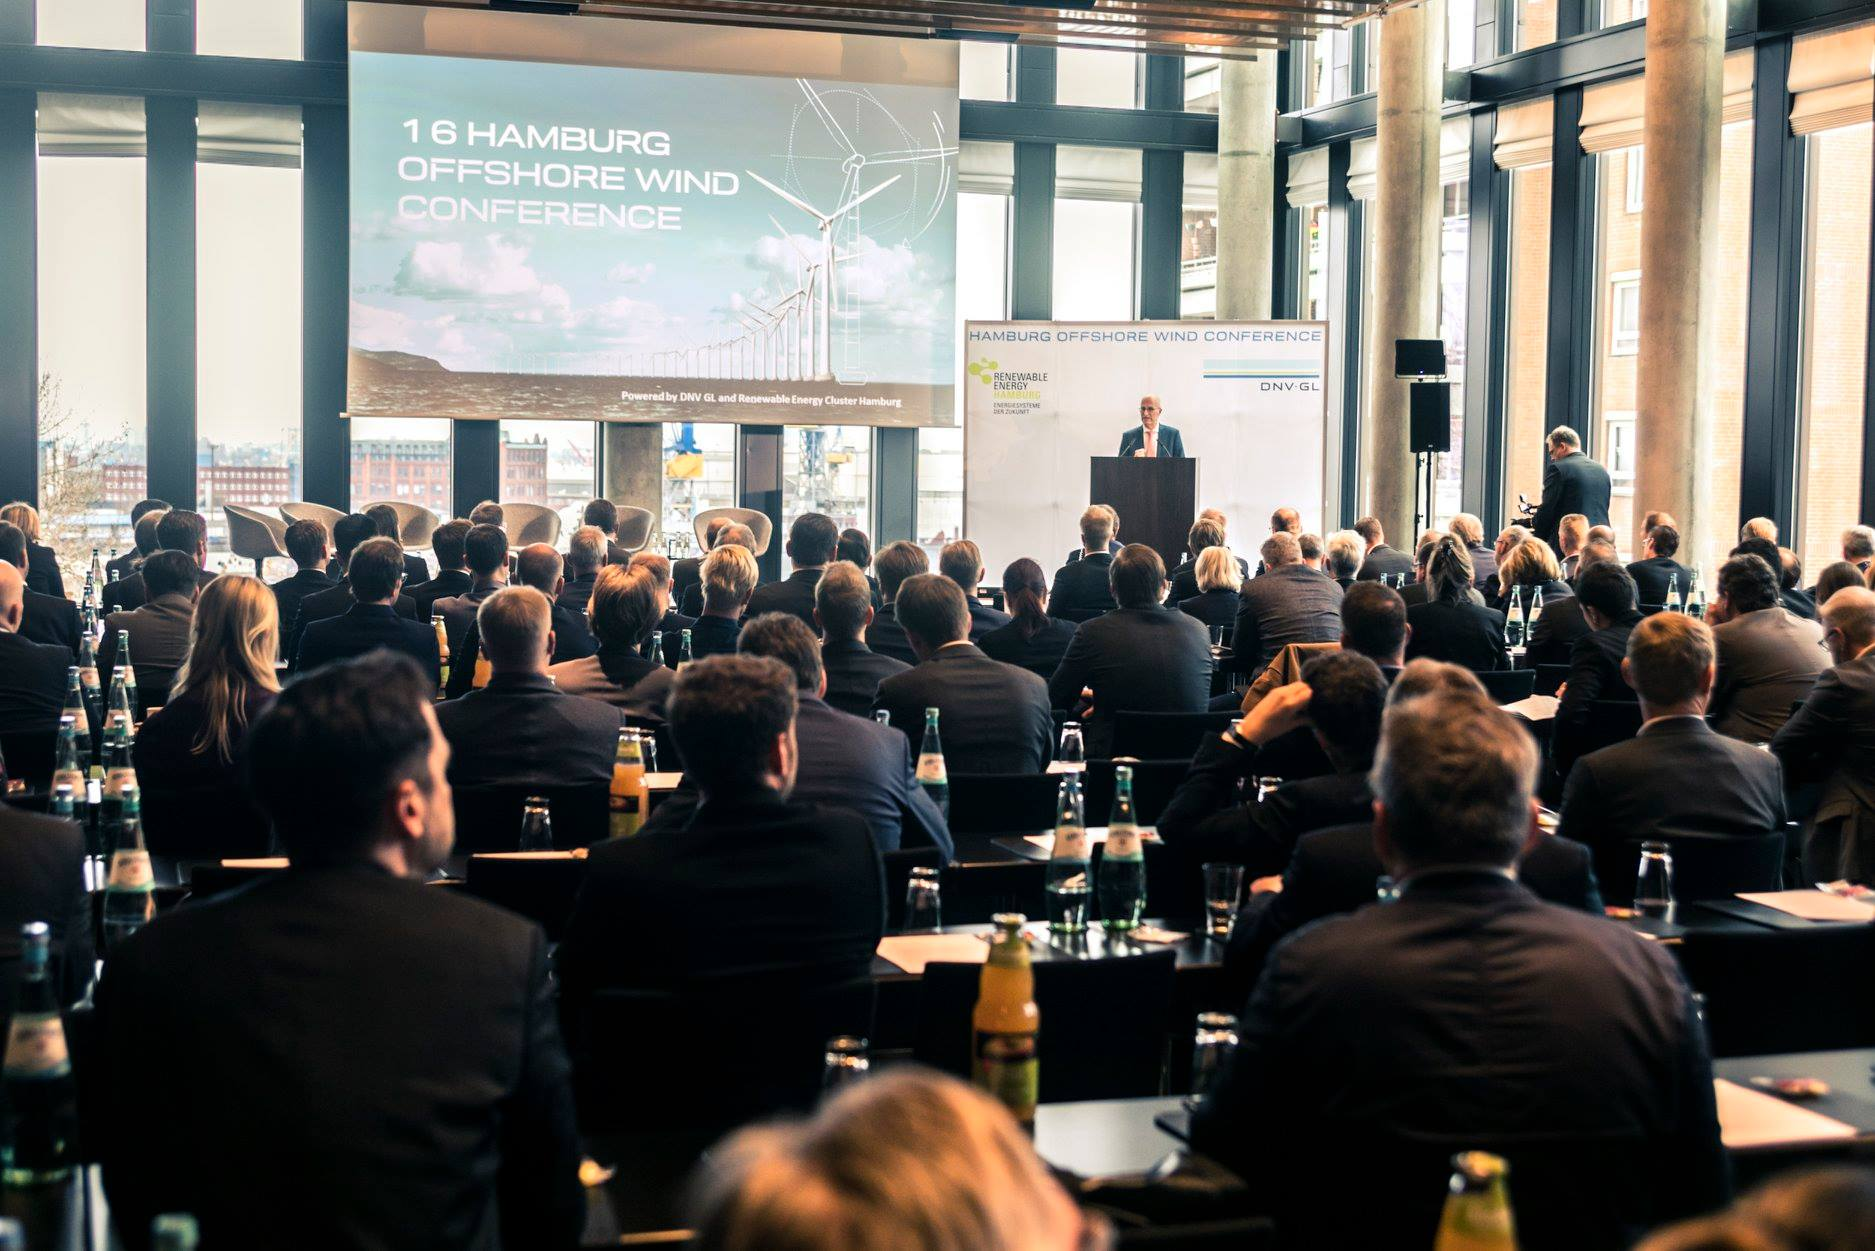 Hamburg Offshore Wind Conference 2019